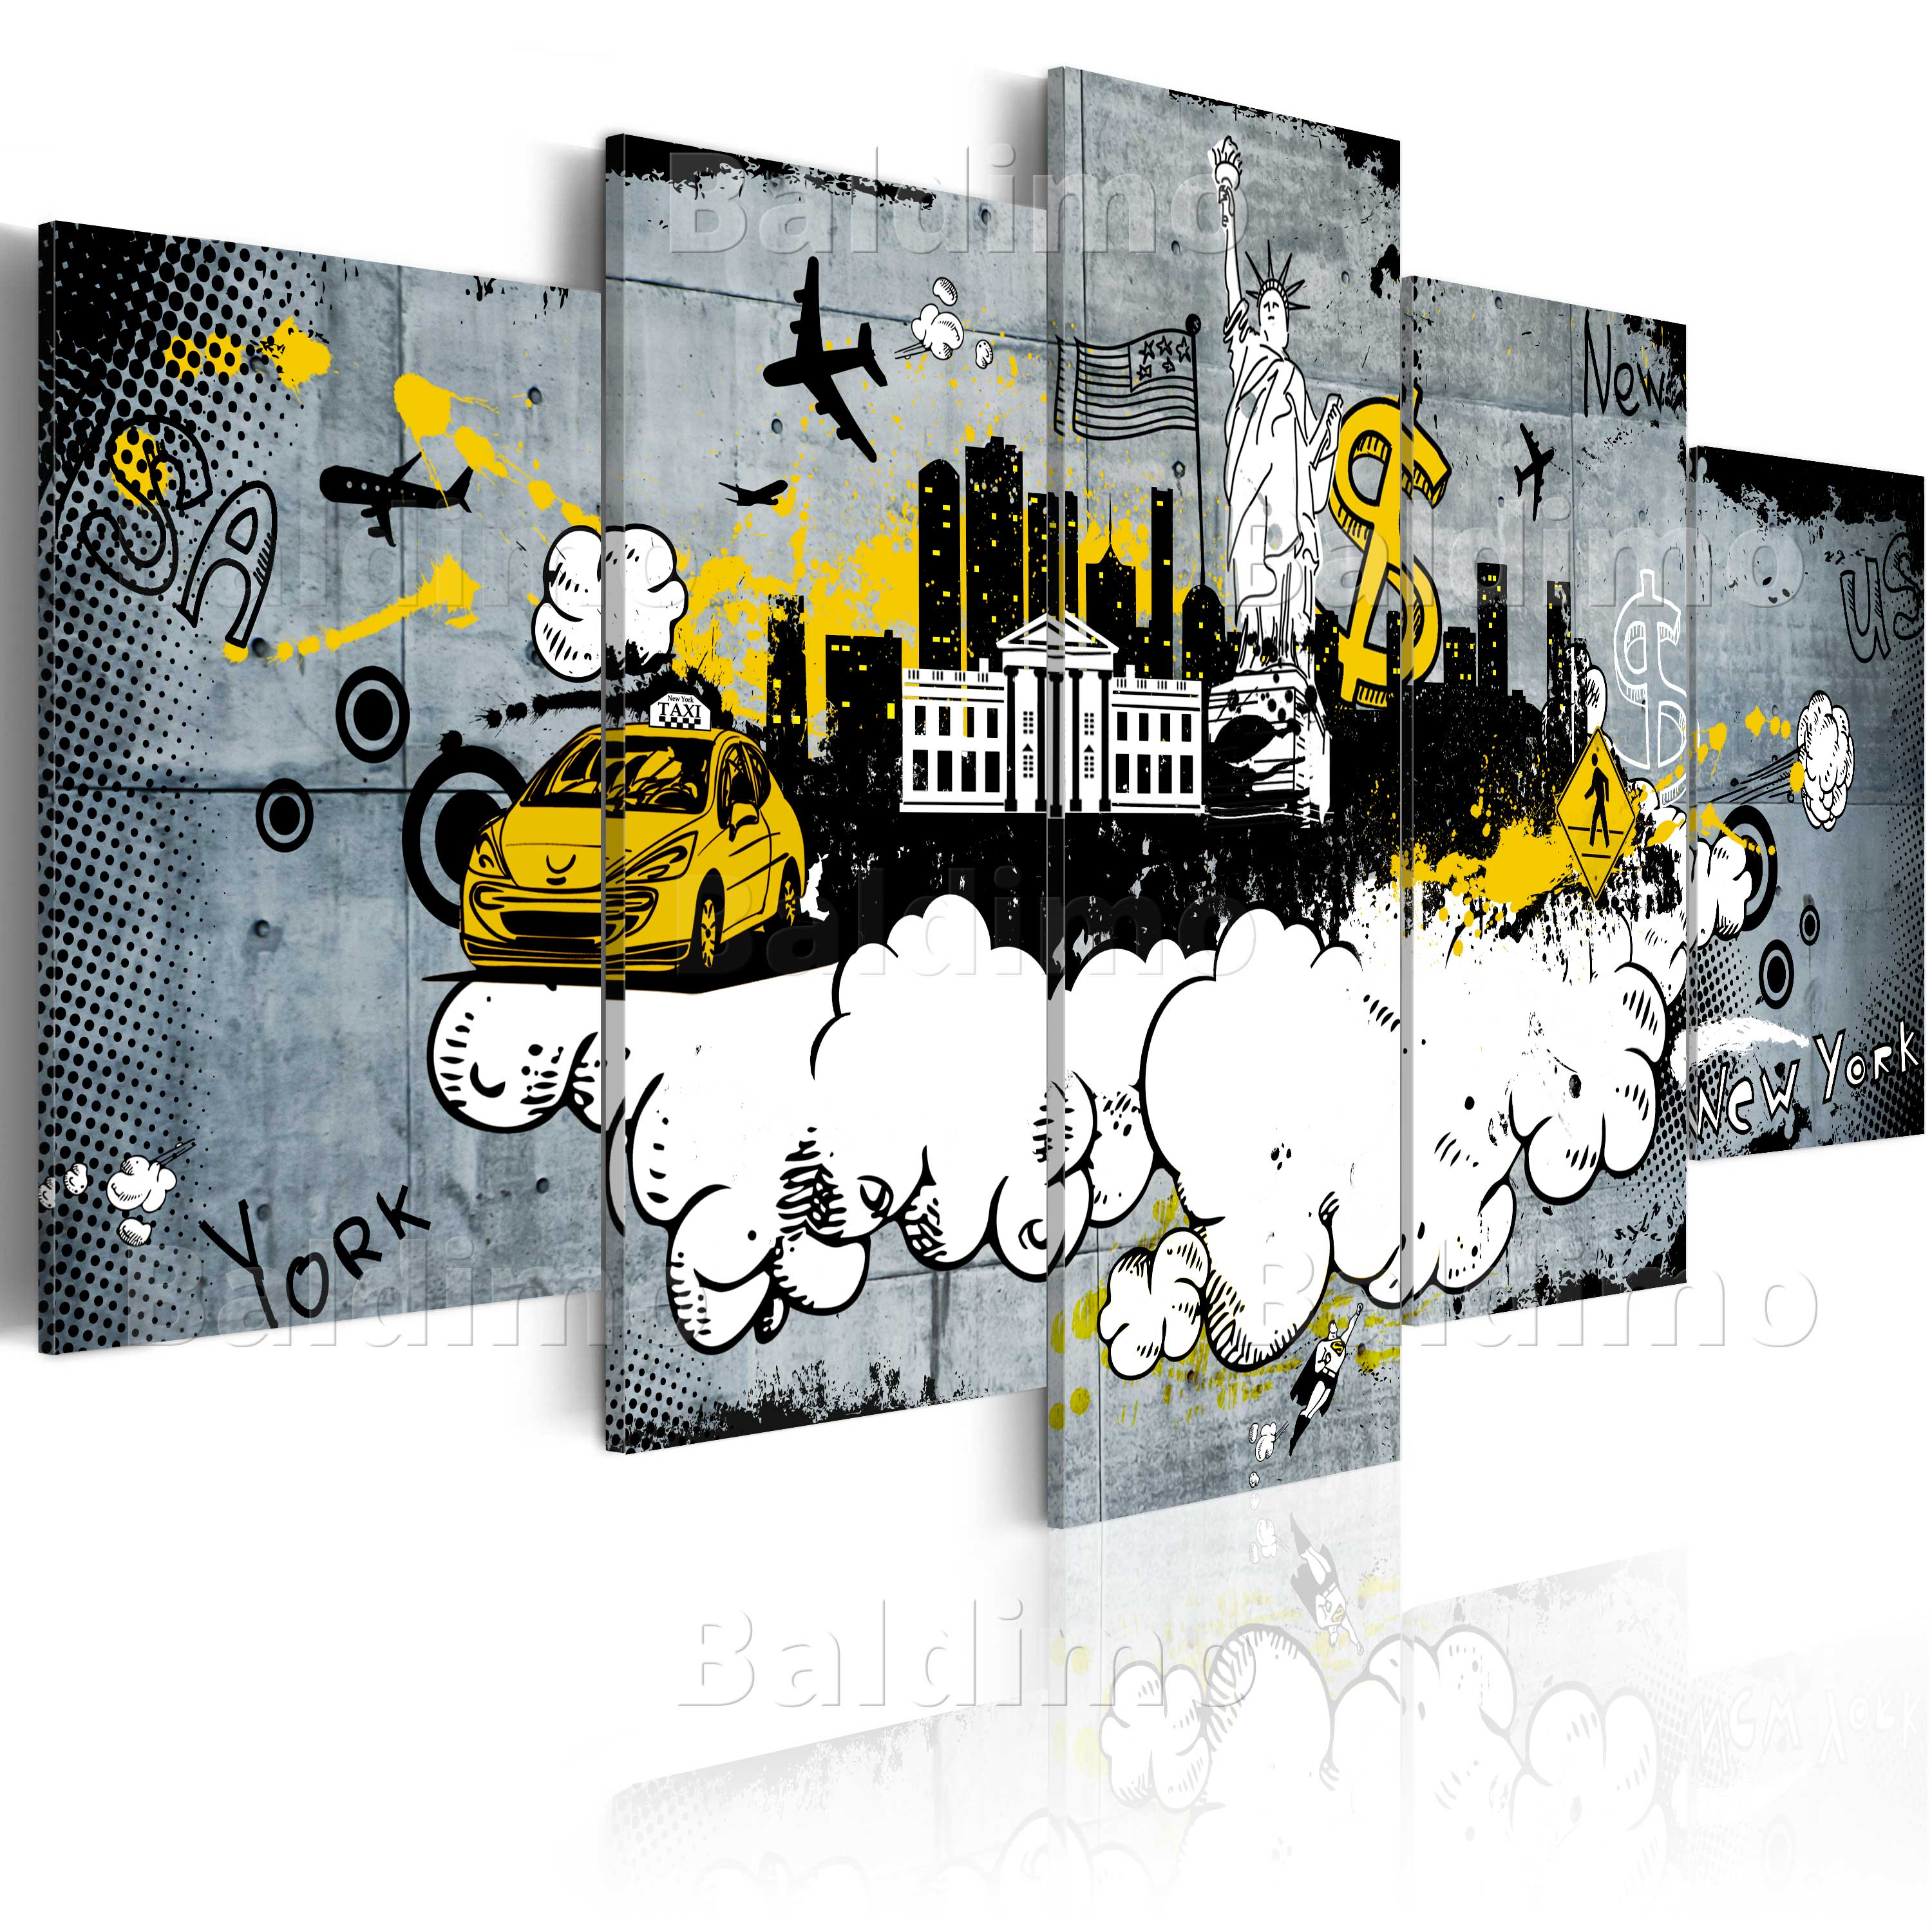 LARGE CANVAS WALL ART PRINT + IMAGE + PICTURE + PHOTO NYC GRAFFITI d-A-0007-b-o